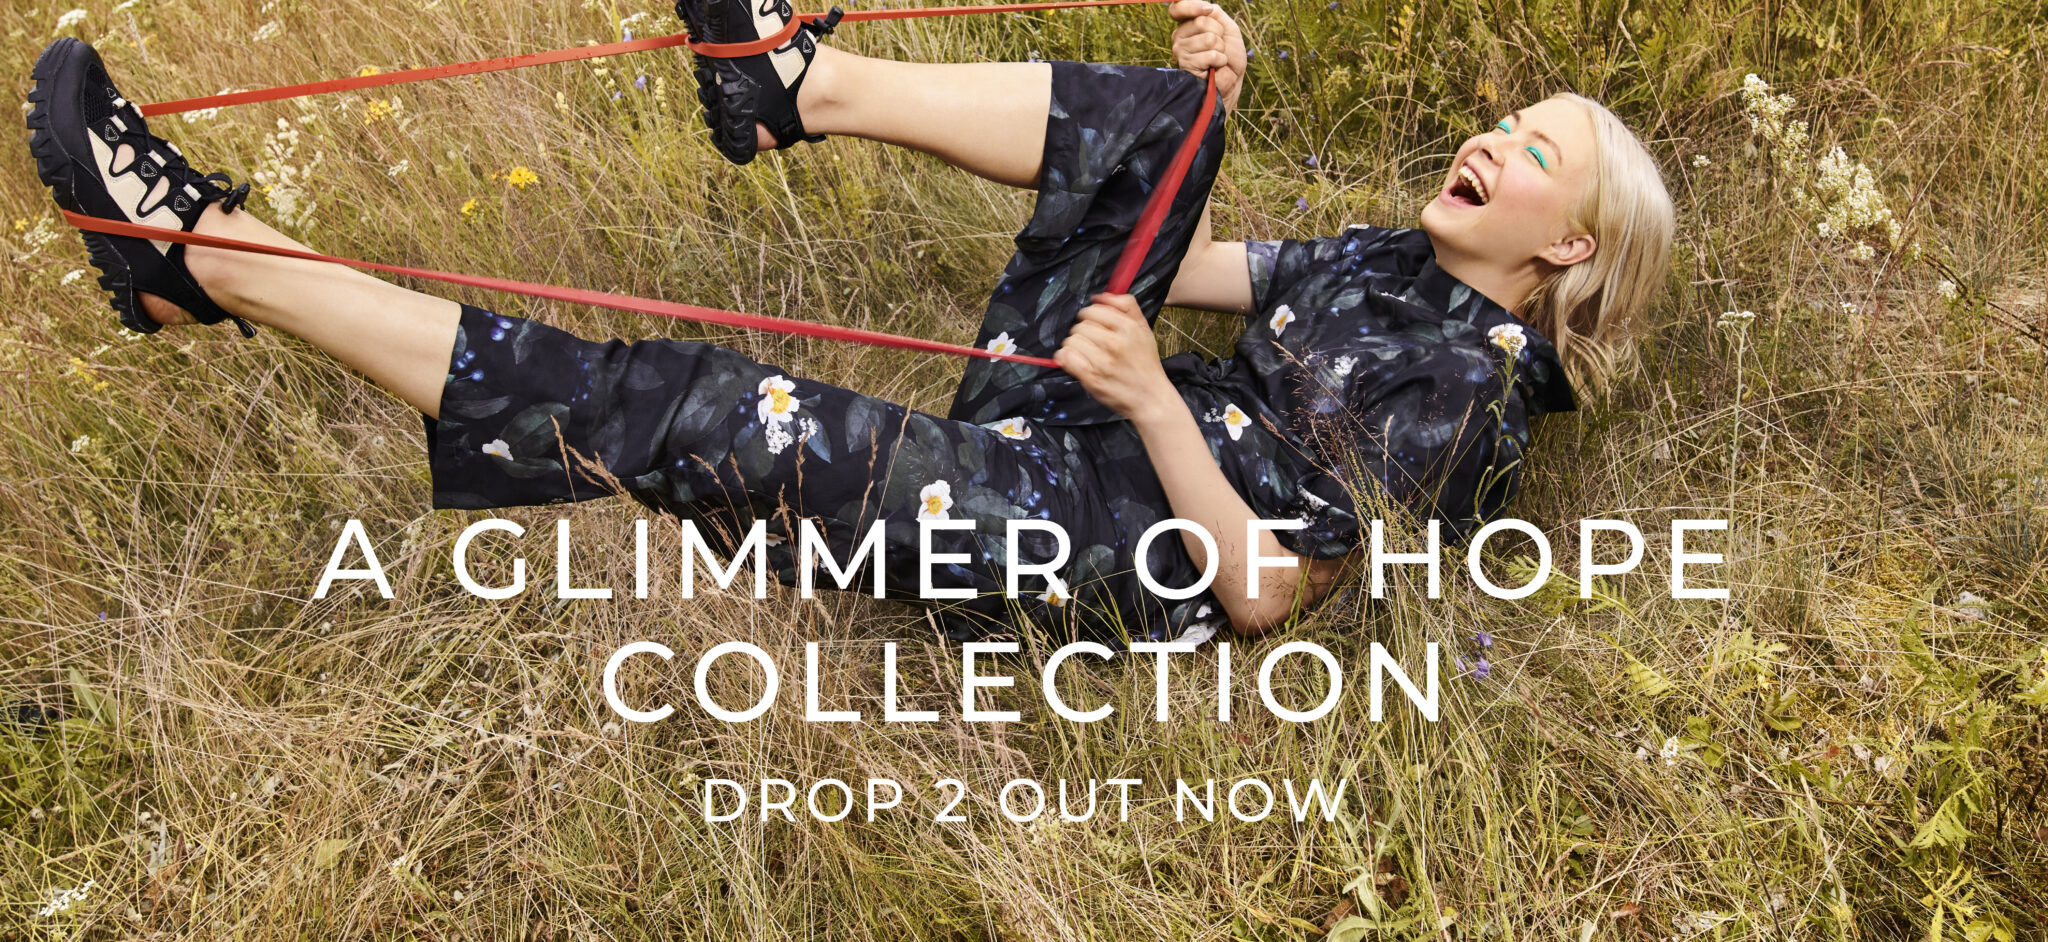 Uhana - A Glimmer of Hope Collection Drop 2